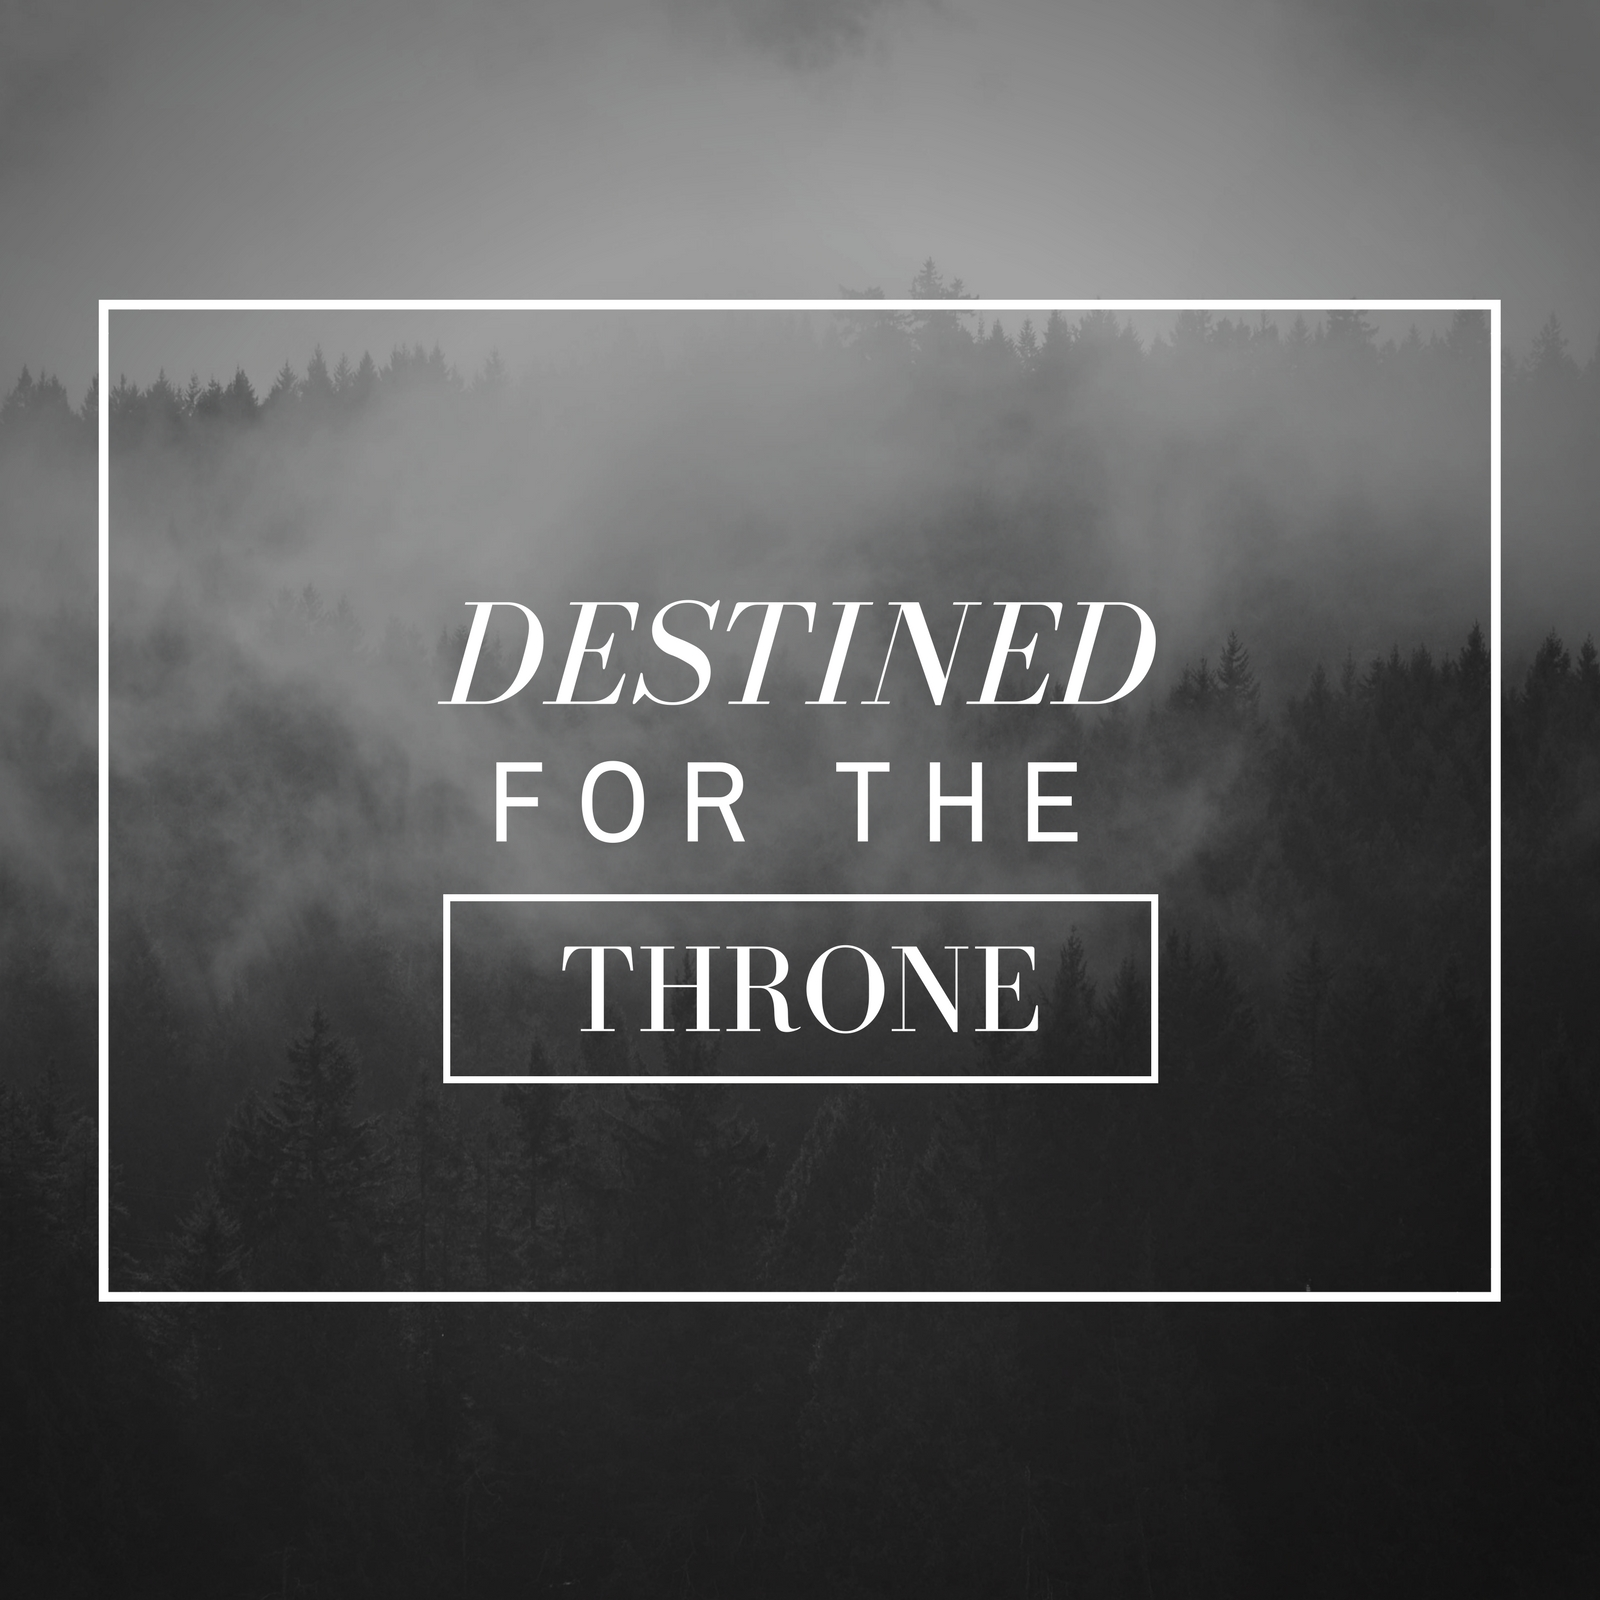 Destined for the Throne 3